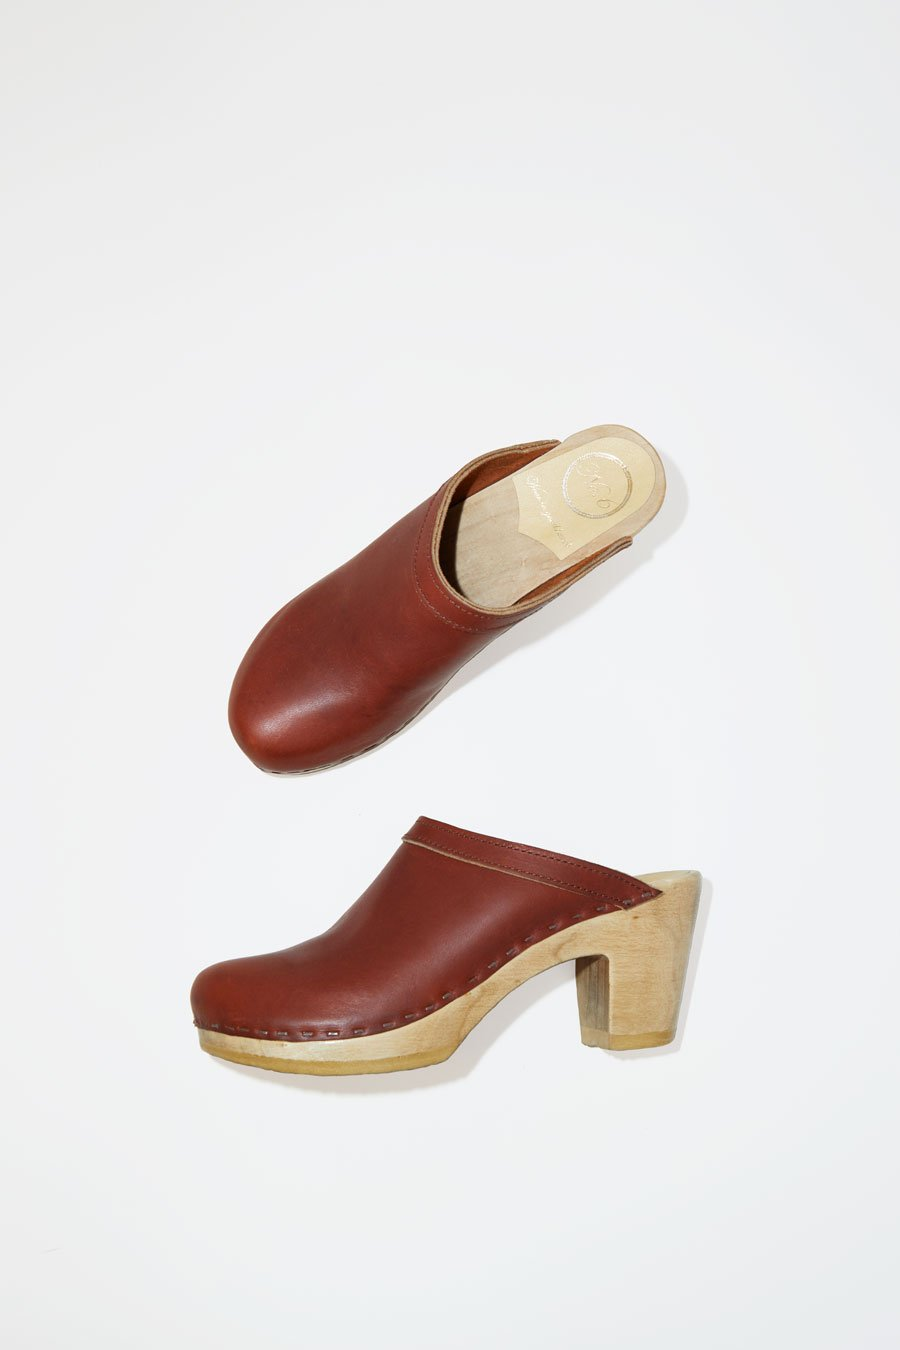 No. 6 Old School Clog on High Heel in Bourbon